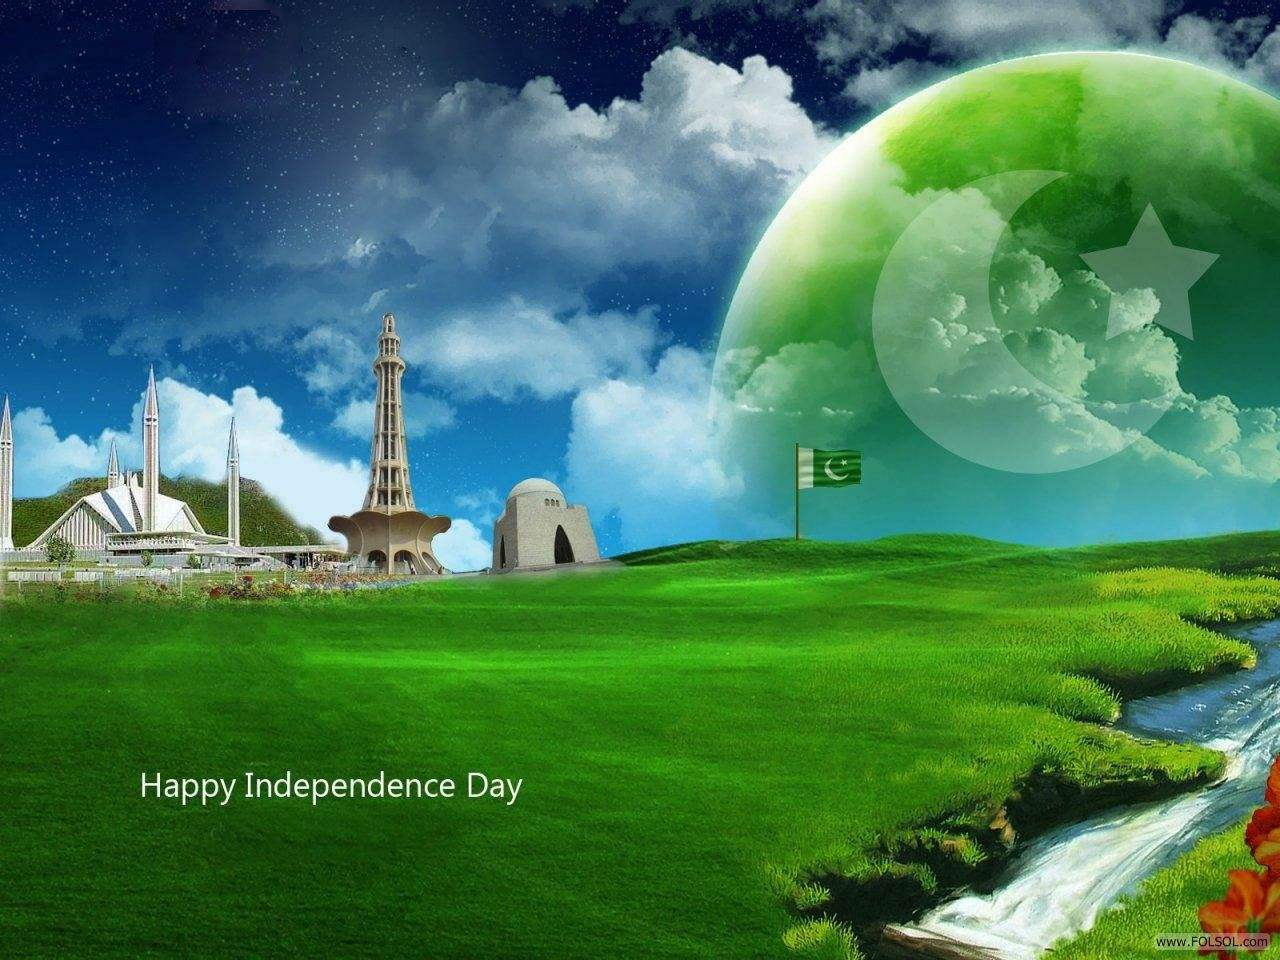 100+ 14 august dp for facebook 2016 - Happy Independence ... |14 August